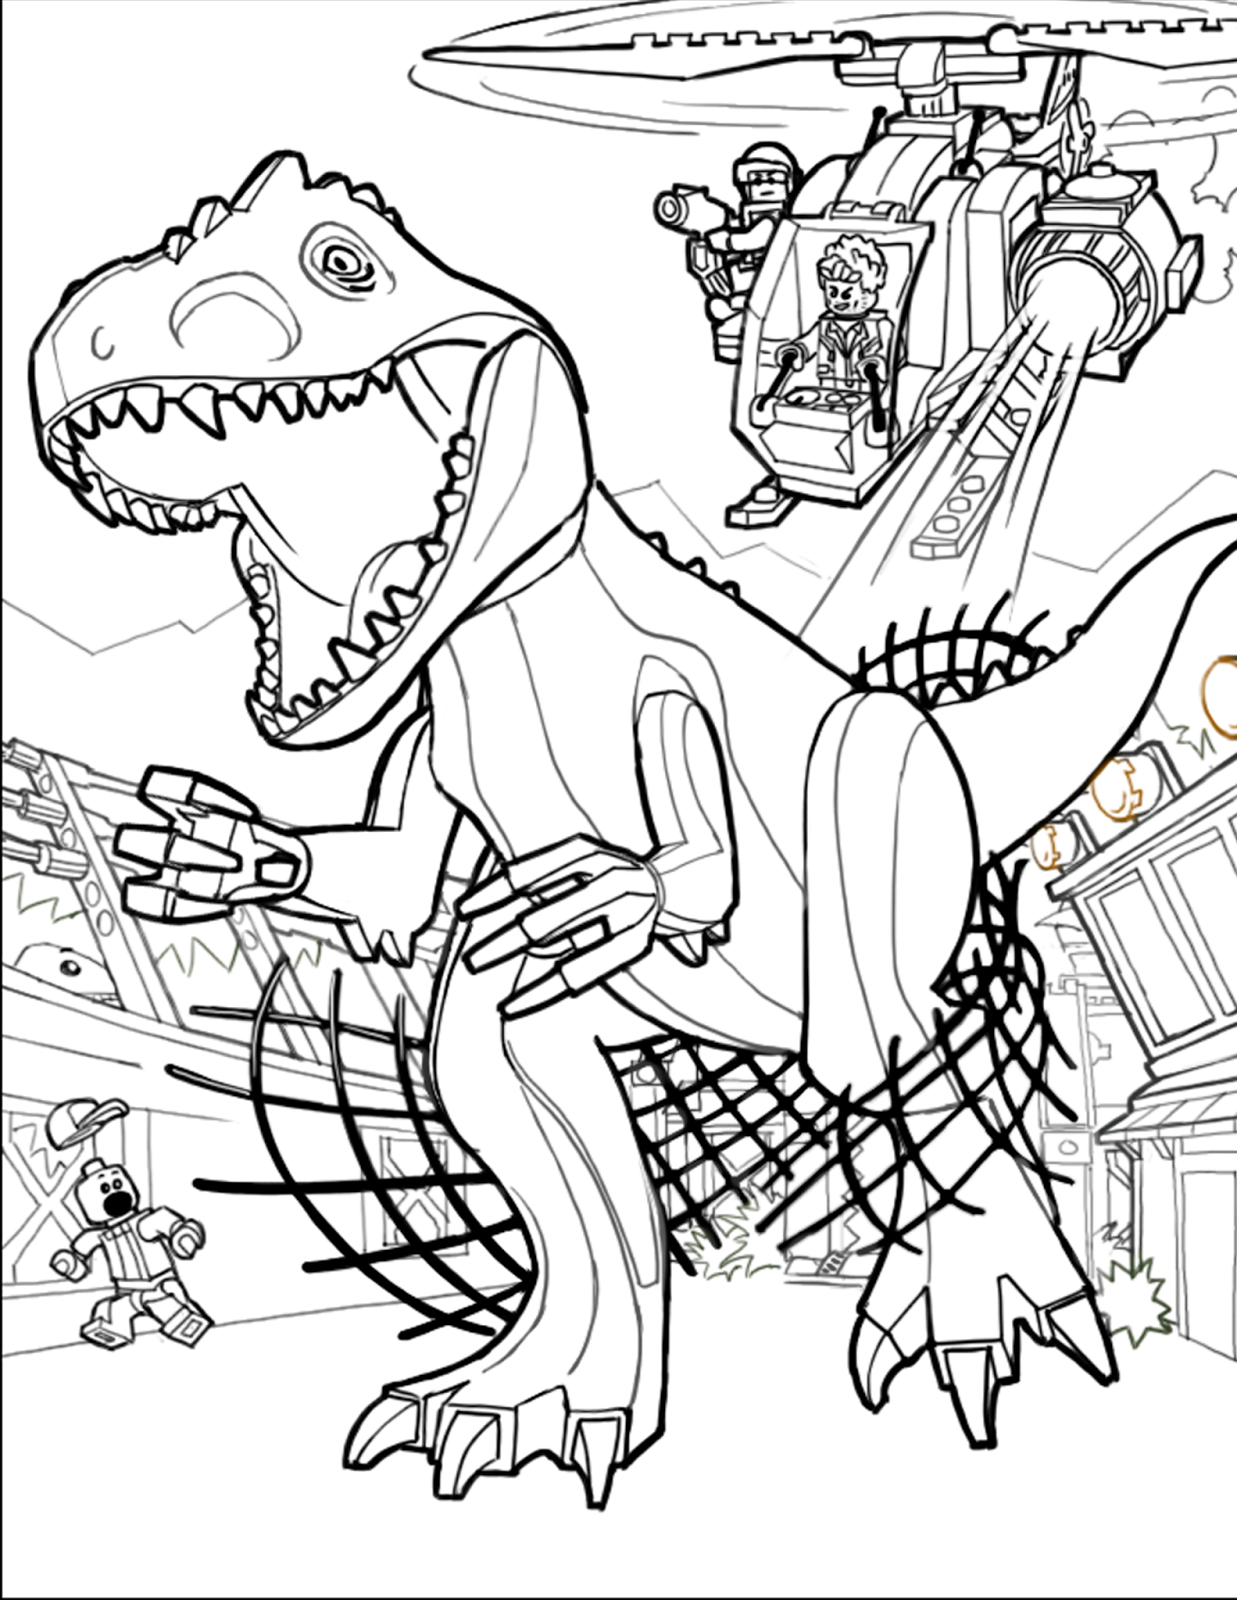 Fun Amp Learn Free Worksheets For Kid Jurassic World Free Coloring Pages